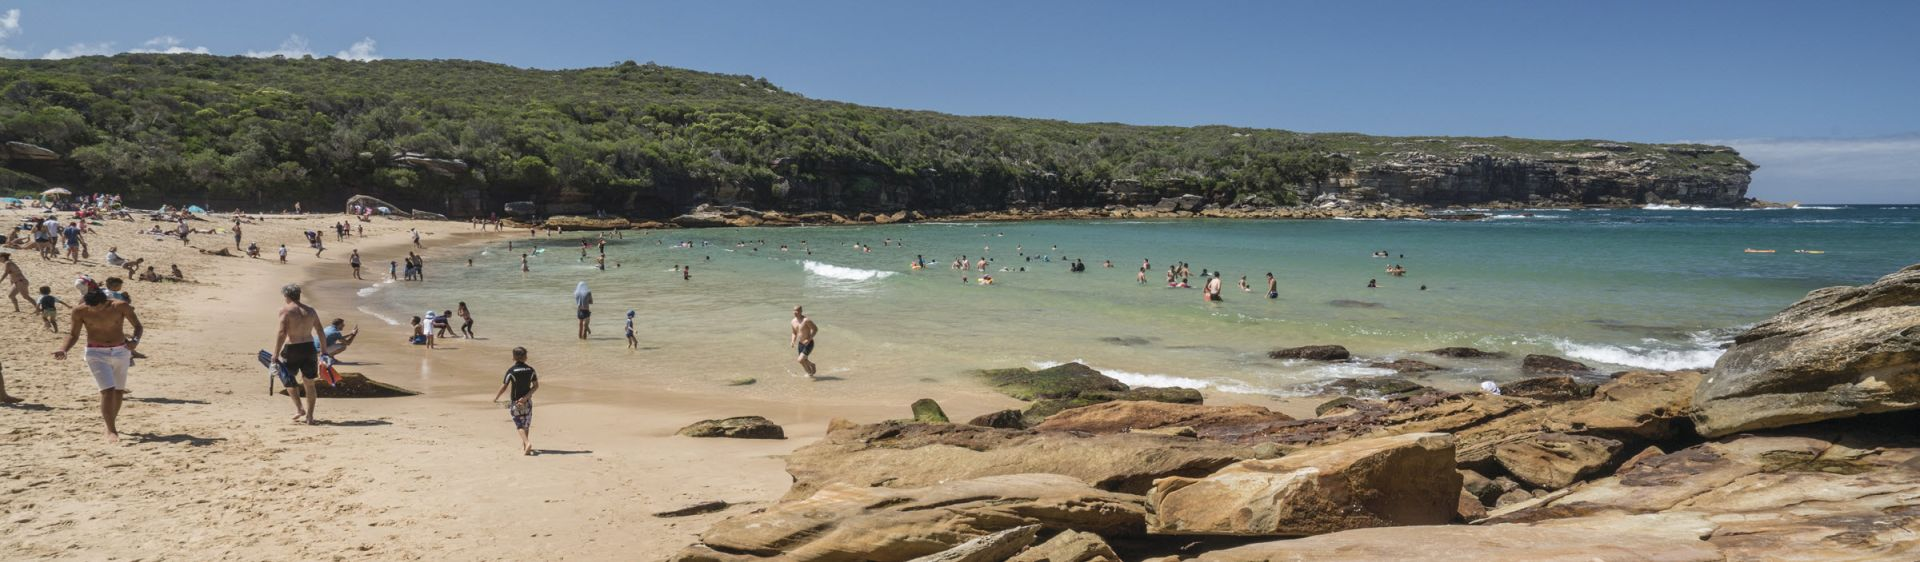 Wattamolla beach, Royal National Park